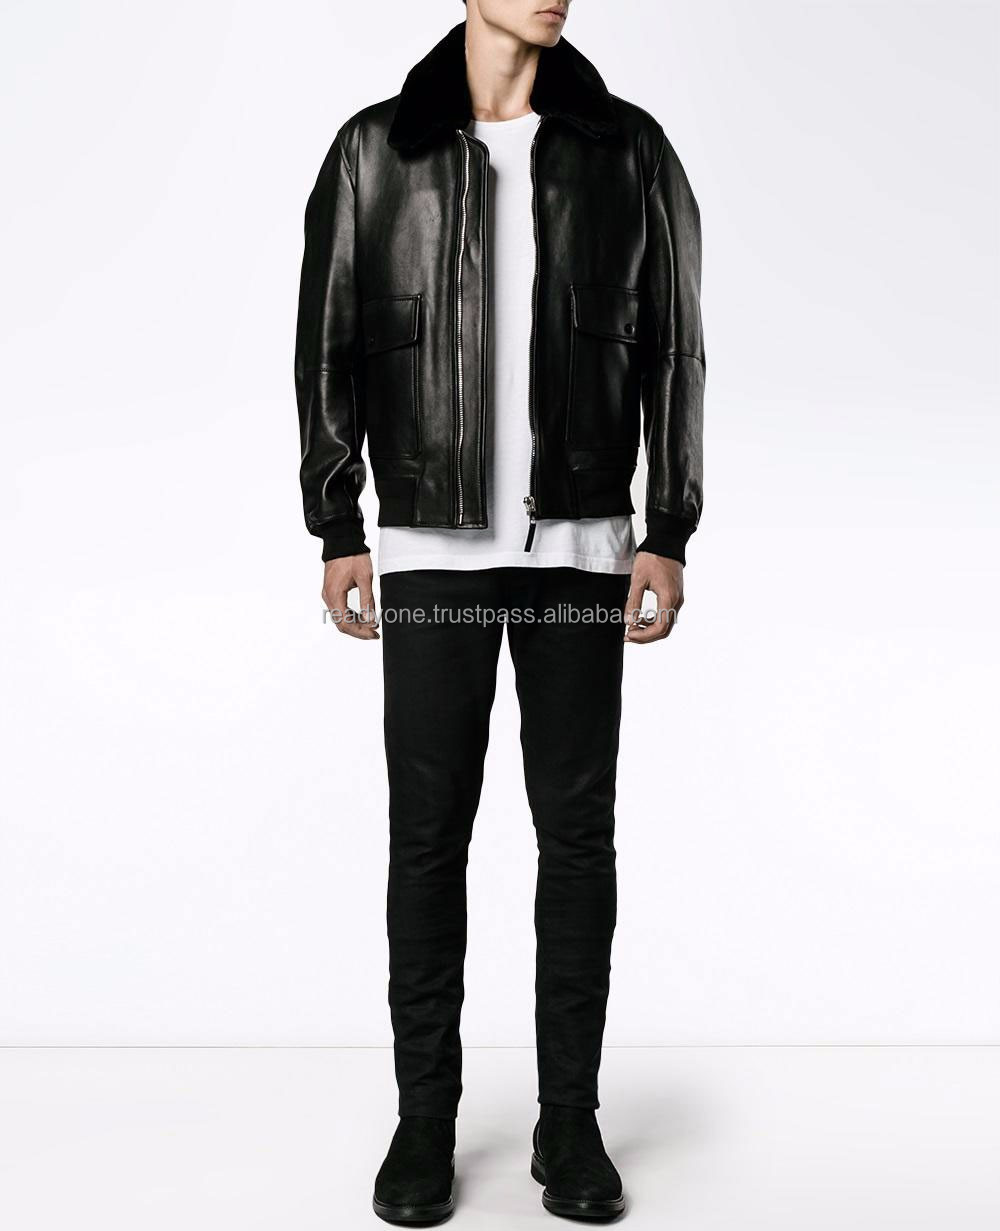 fit classic customized slim fit men pu leather / original leather jacket